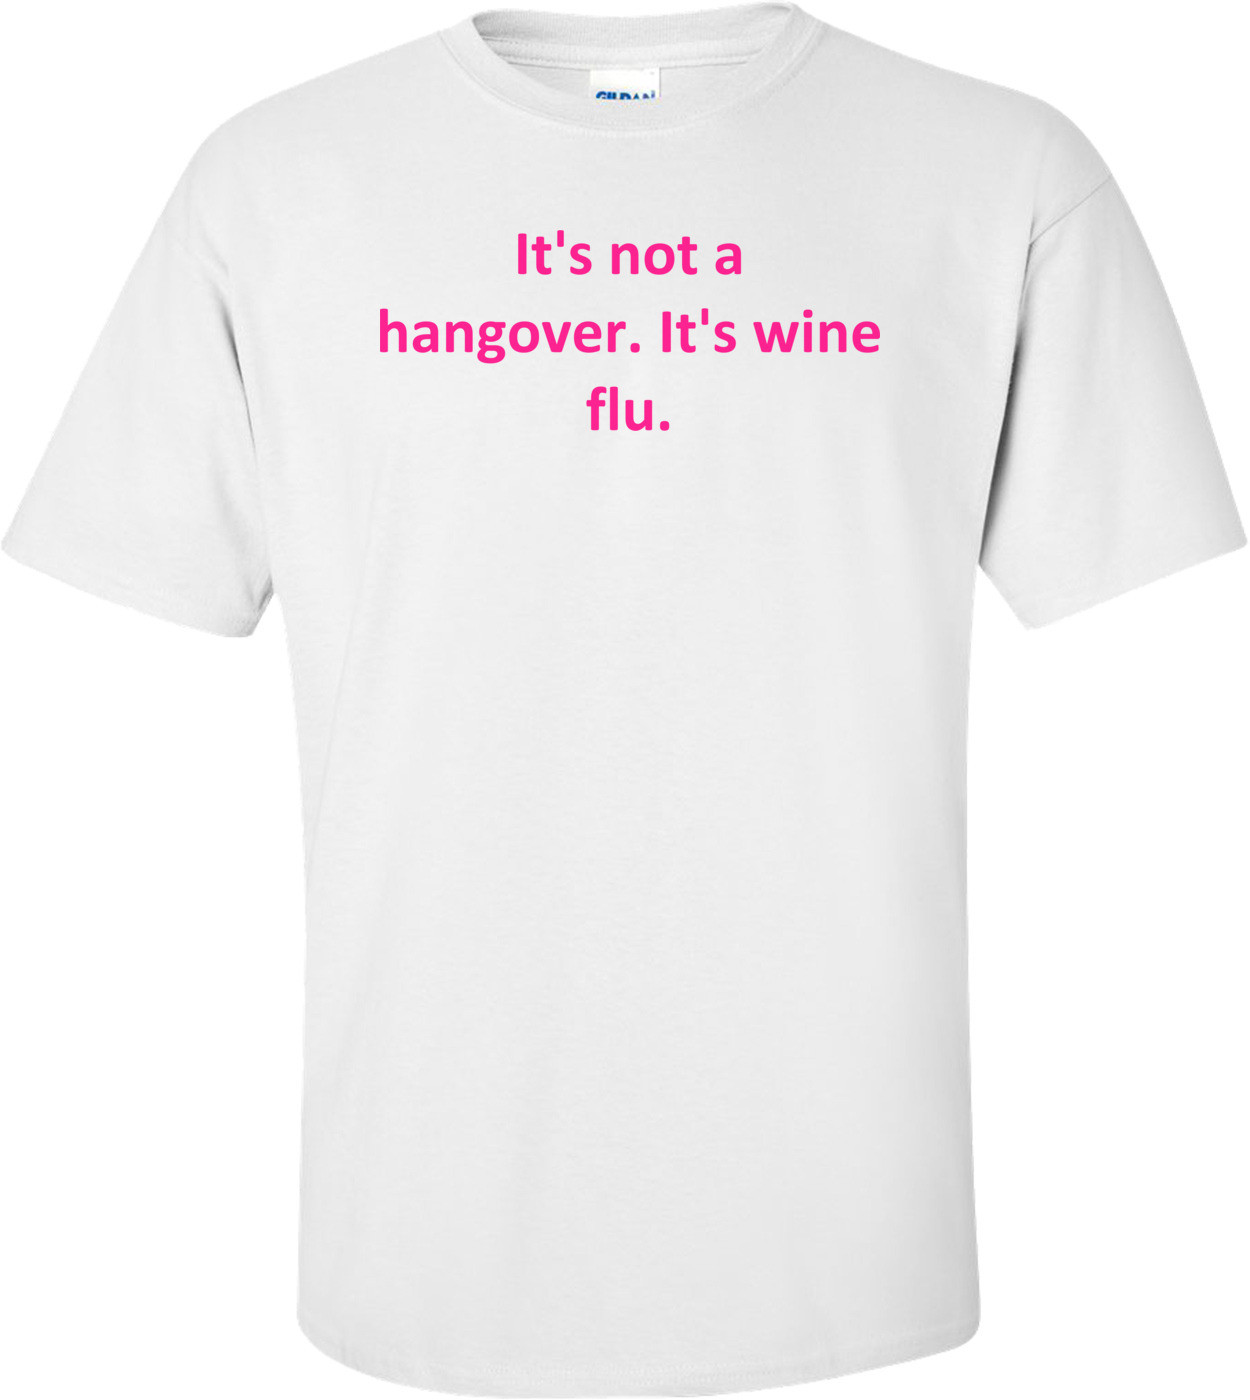 It's not a hangover. It's wine flu. Shirt